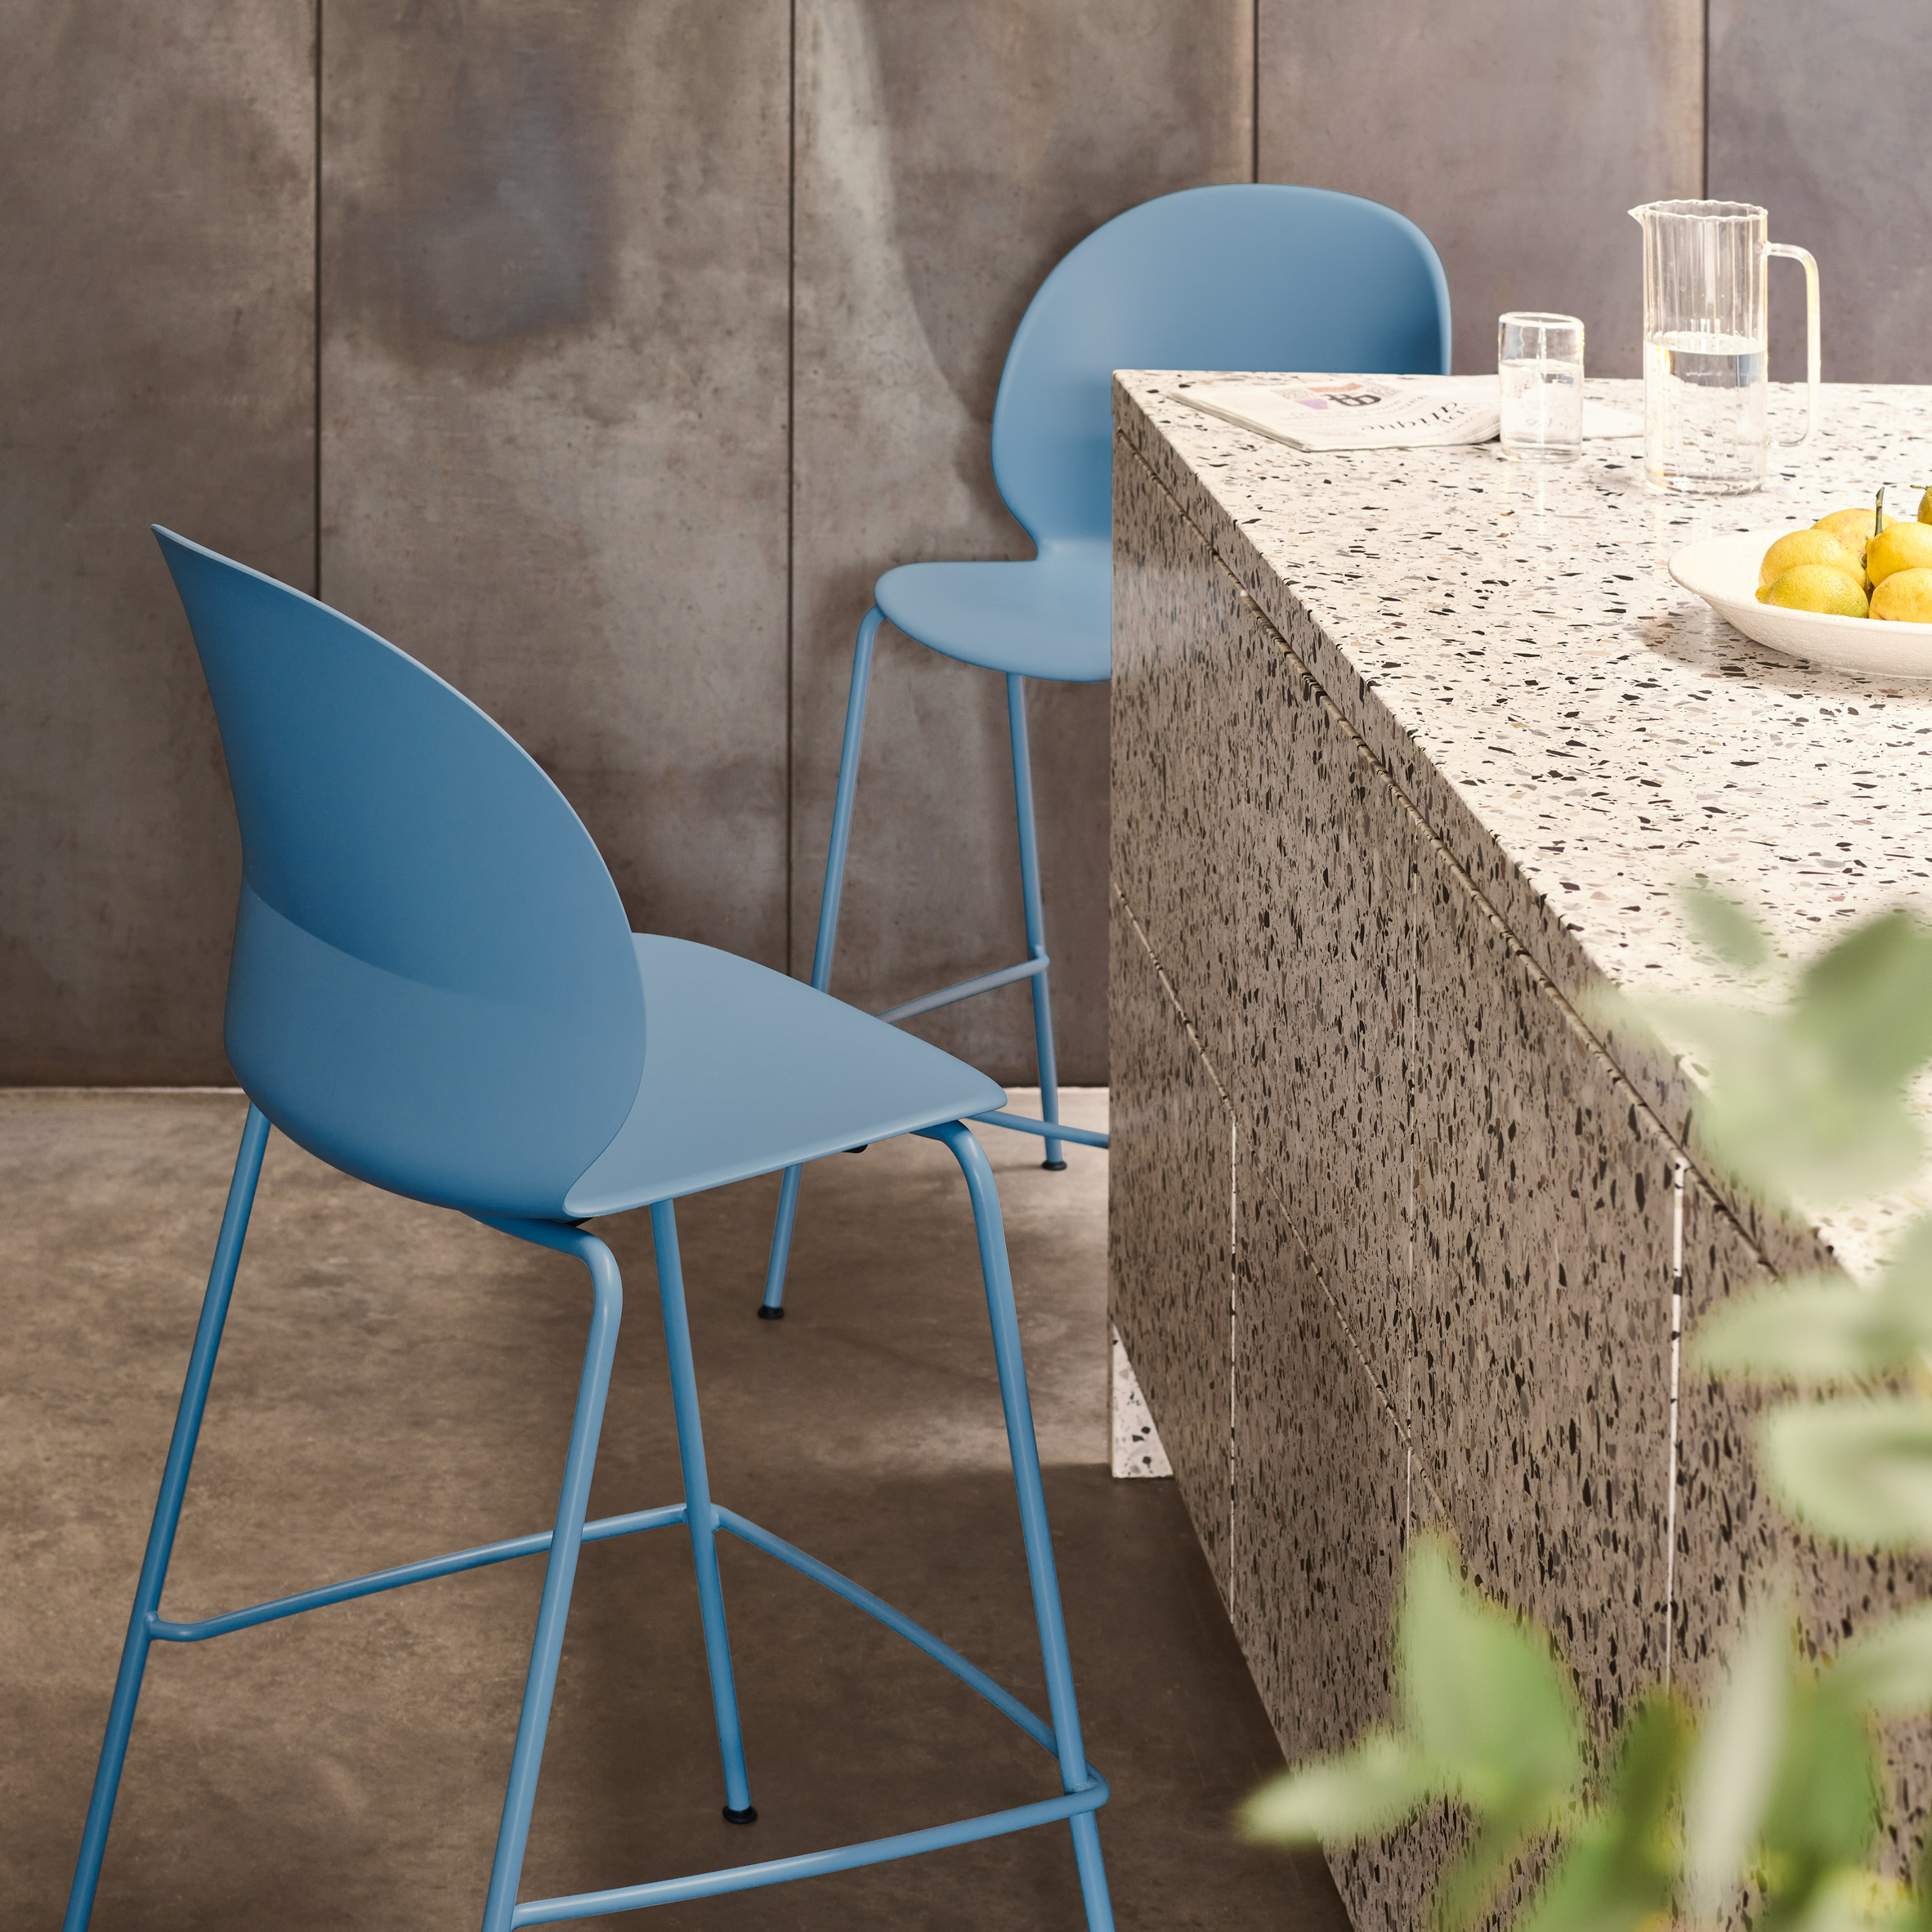 Blue NO2 Recycle chair by Fritz Hansen and Nendo